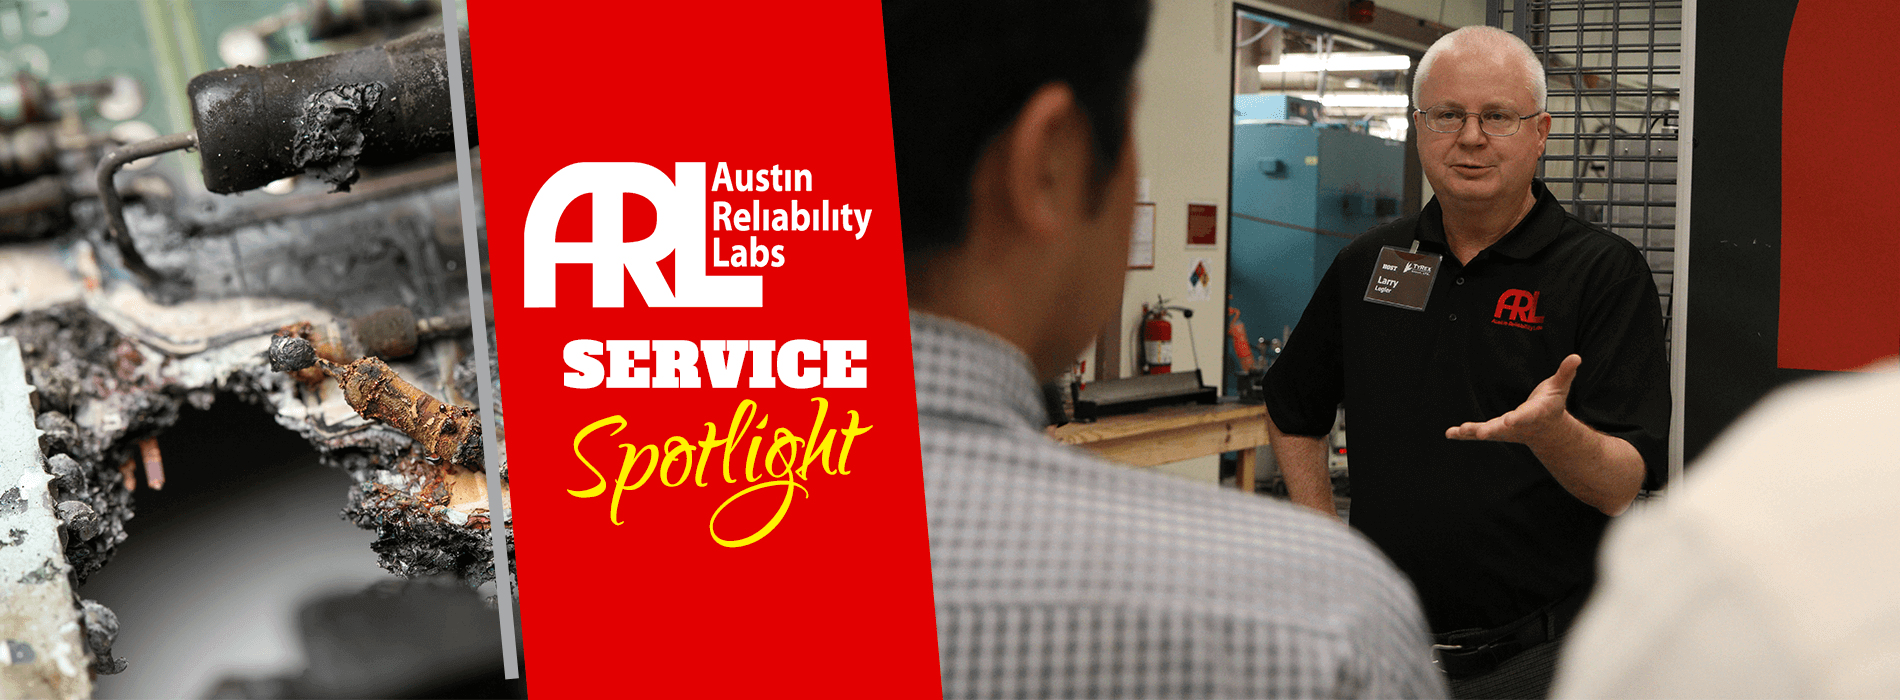 Why Test For Reliability? Service Spotlight